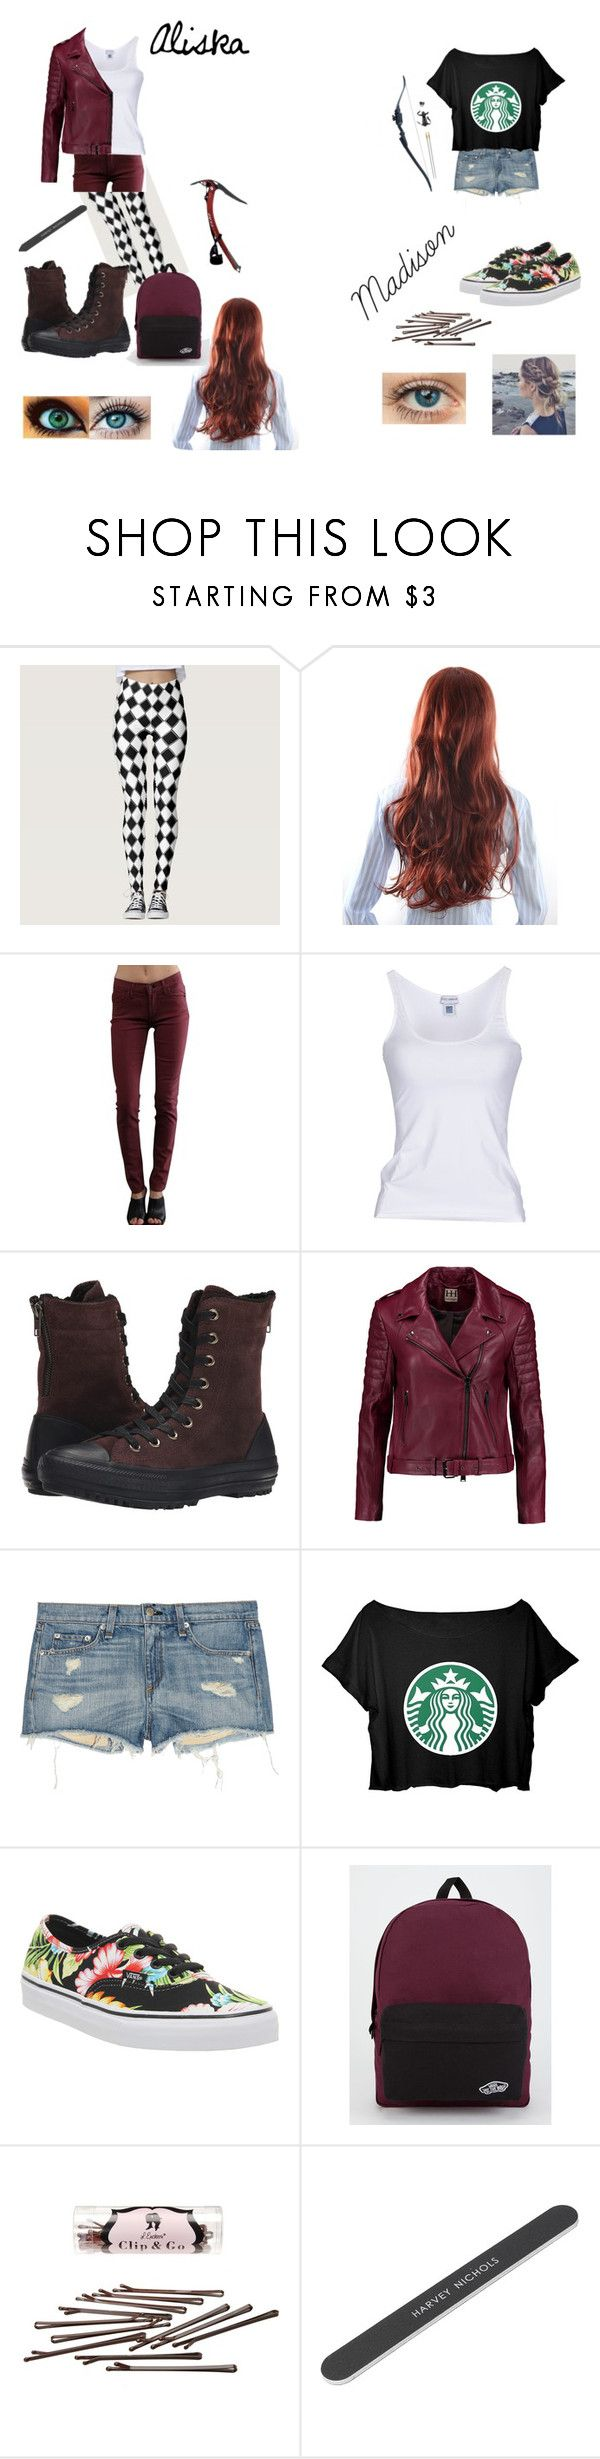 """""""Different Sisters"""" by crittersmommyrocks ❤ liked on Polyvore featuring James Jeans, Dolce&Gabbana, Converse, Haute Hippie, rag & bone, Vans and L. Erickson"""